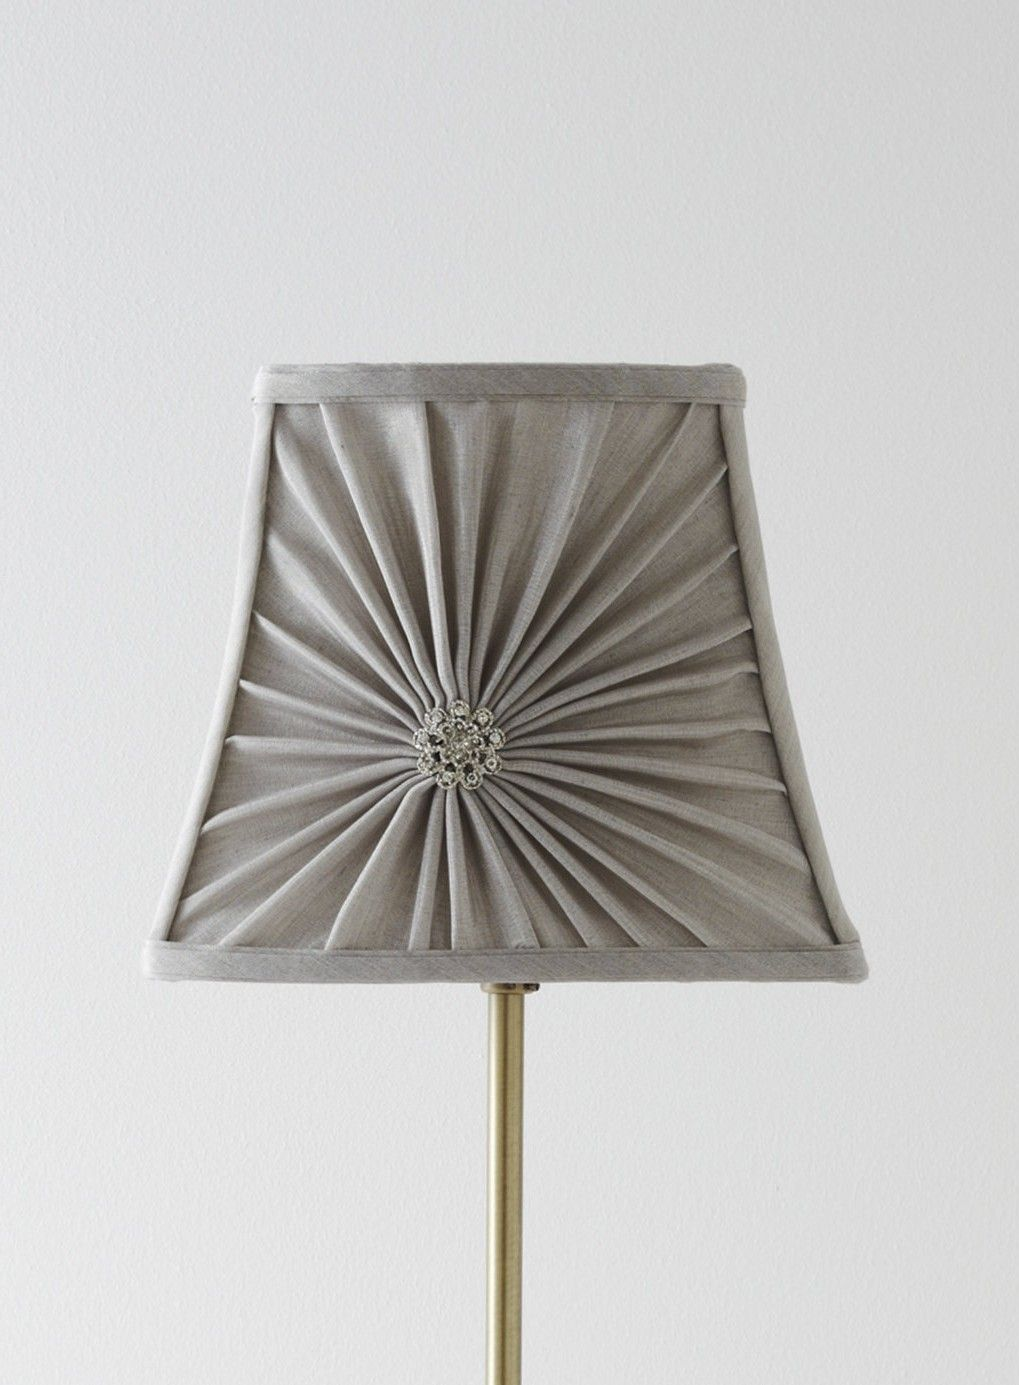 Small White Square Lamp Shade